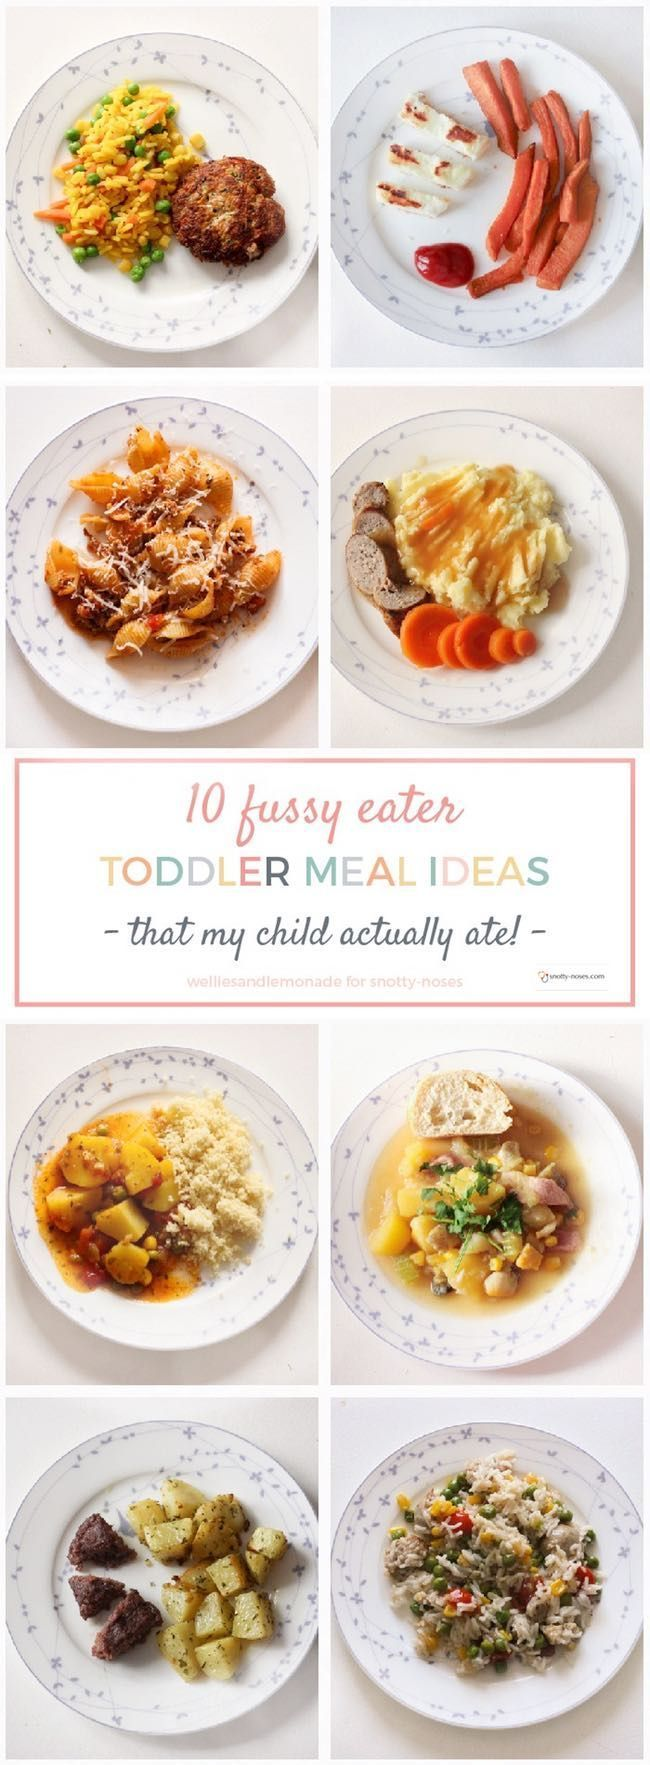 Picky Toddler Meal Ideas | Pinterest | Picky toddler meals, Meal ...